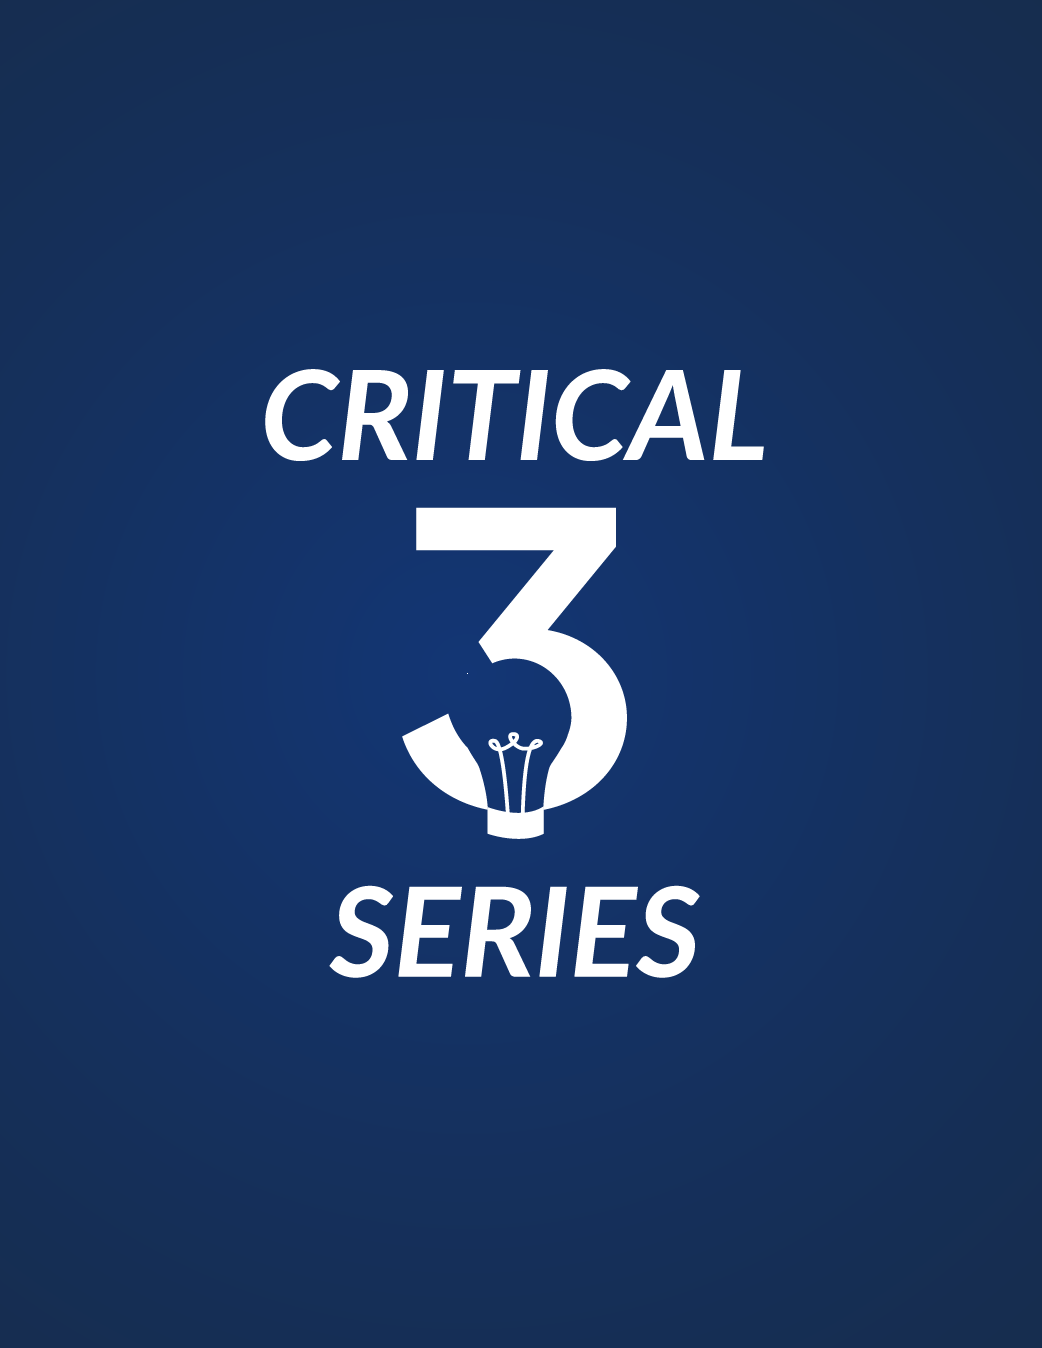 Critical 3 - Crisis Management: What the Media Want to Hear From You